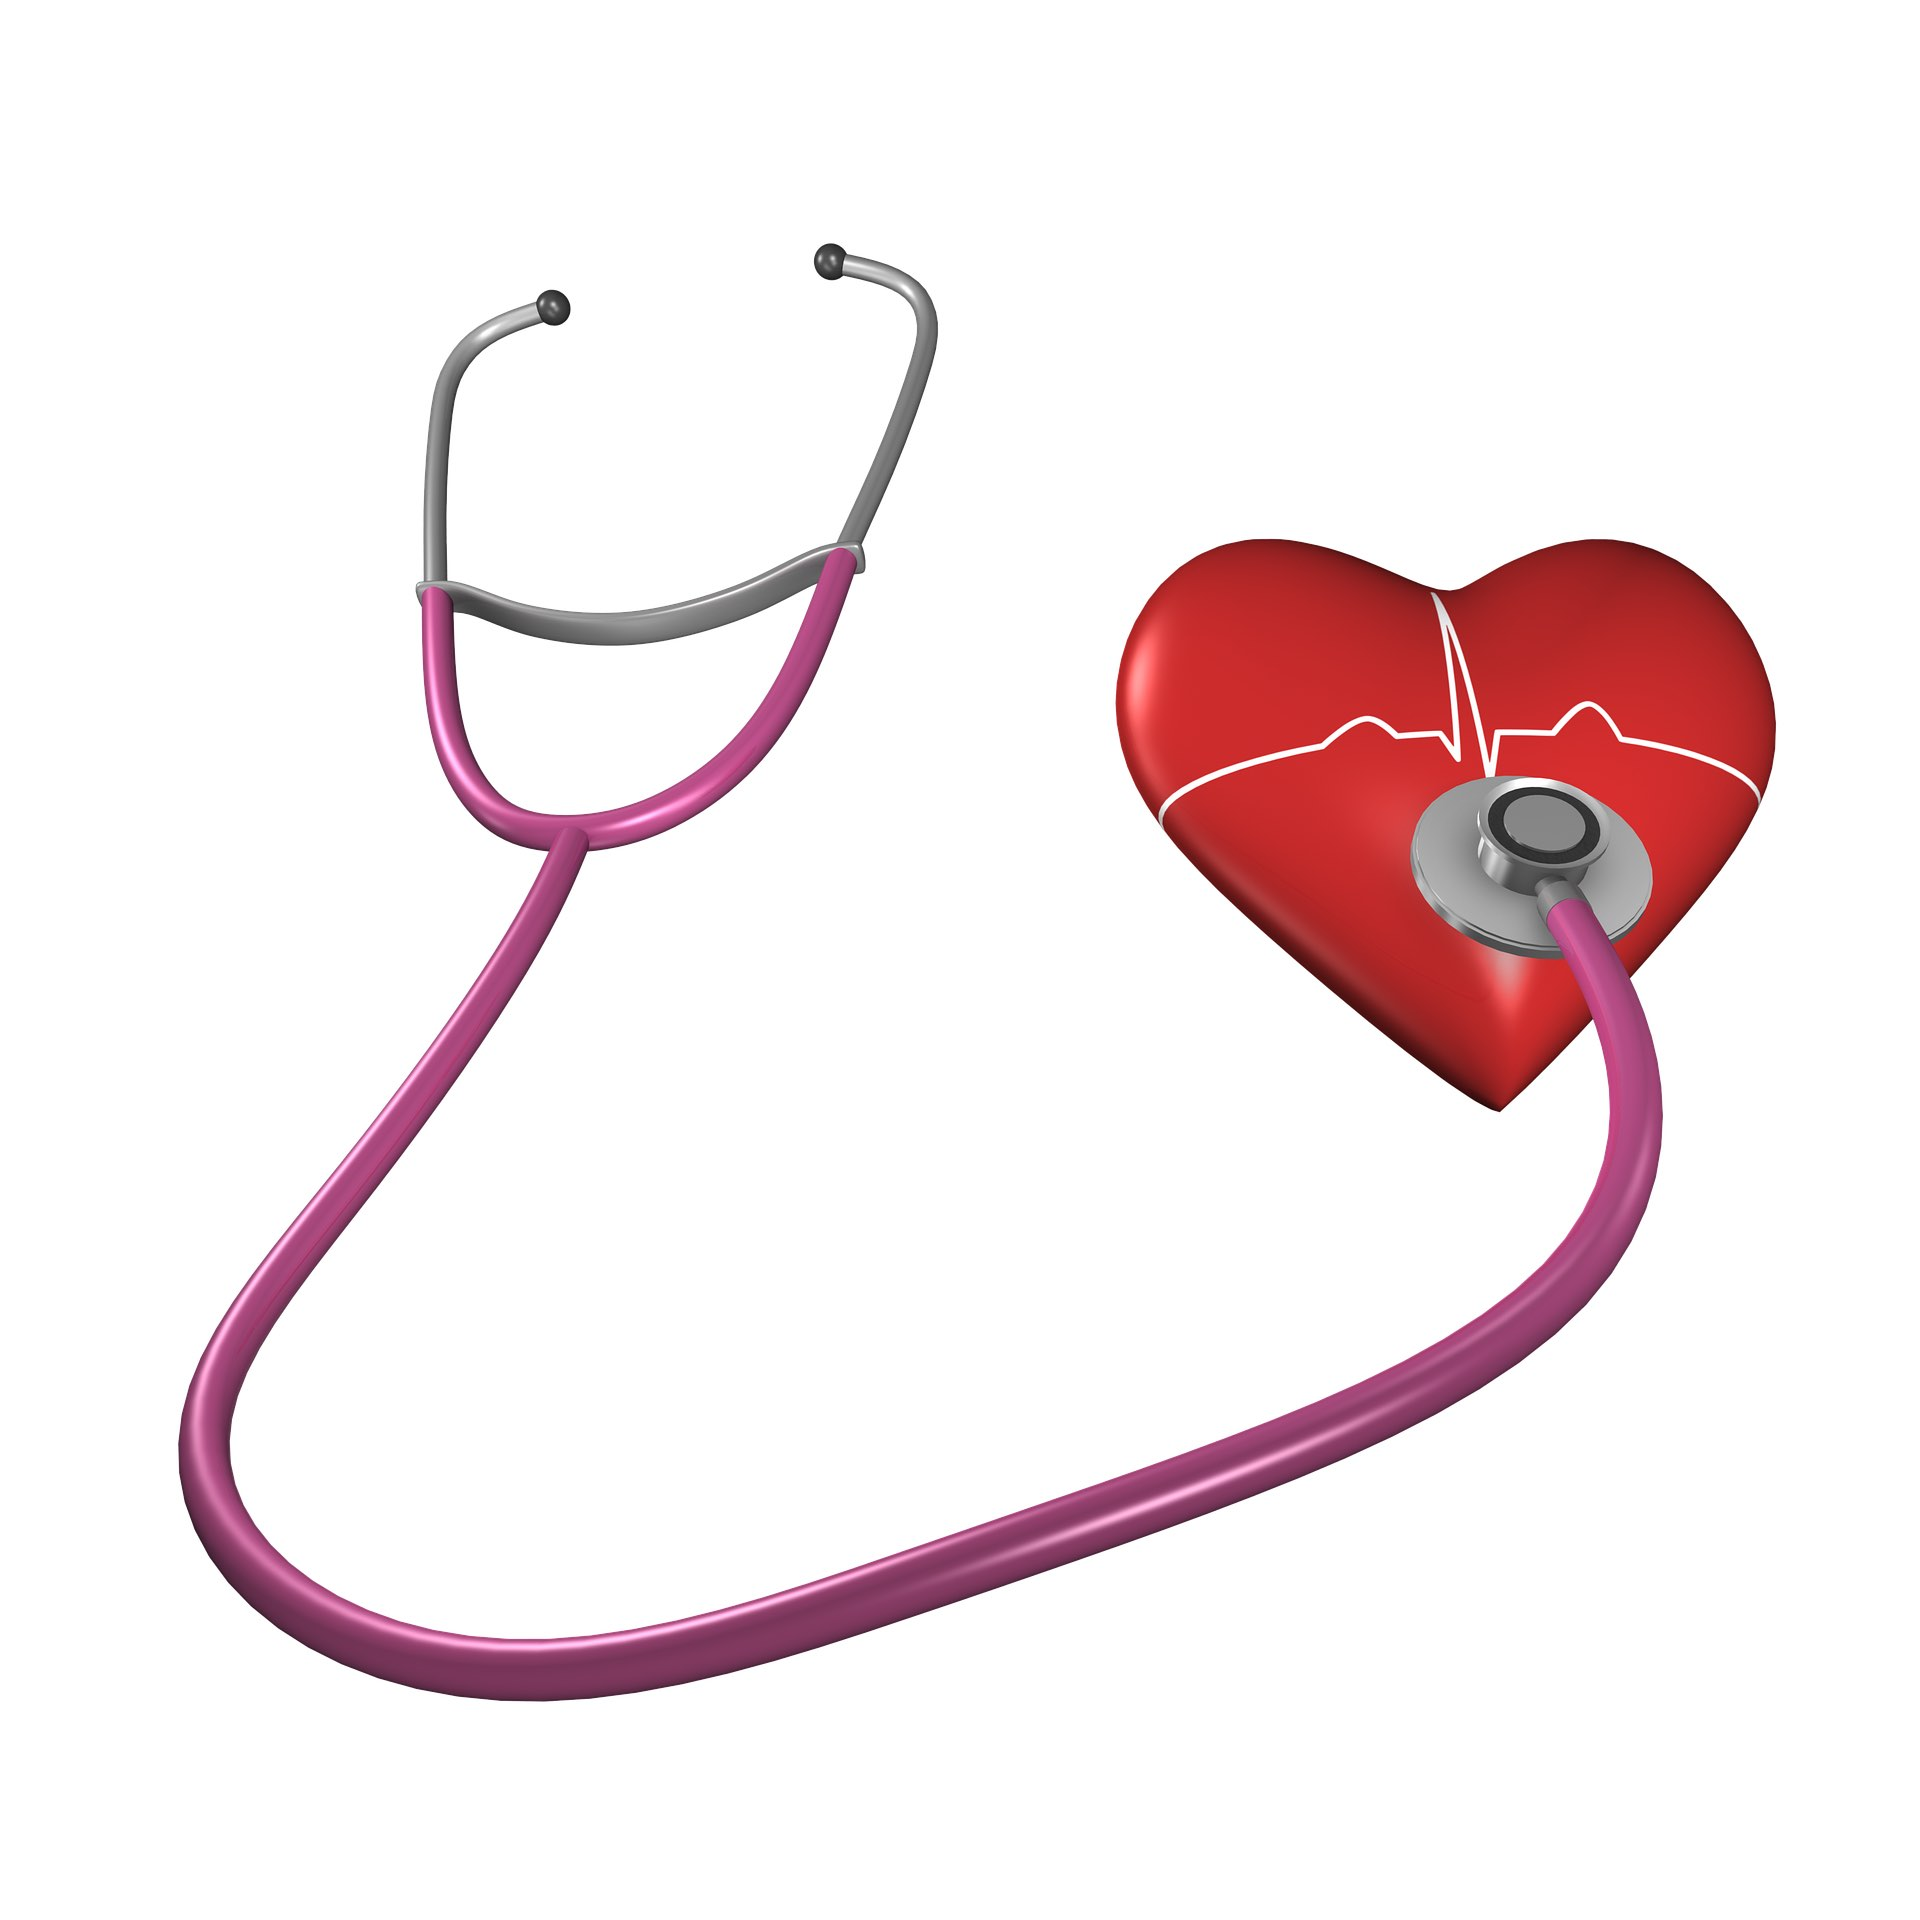 heart-stethoscope-health-functional-medicine